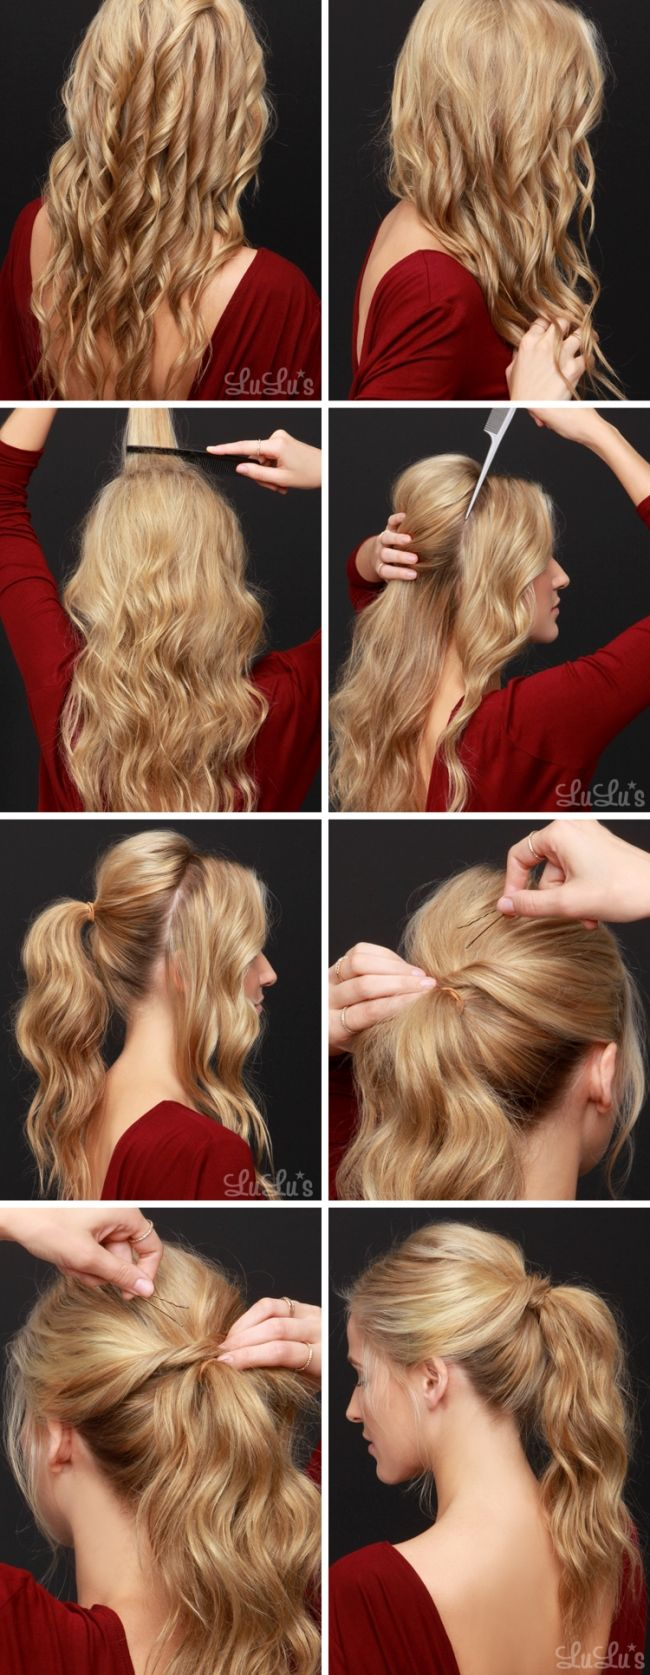 Party Hairstyles For Long Hair Using Step By Step Easy Hairstyles For Long Hair Step Party Hairstyles For Long Hair Easy Party Hairstyles Easy Work Hairstyles